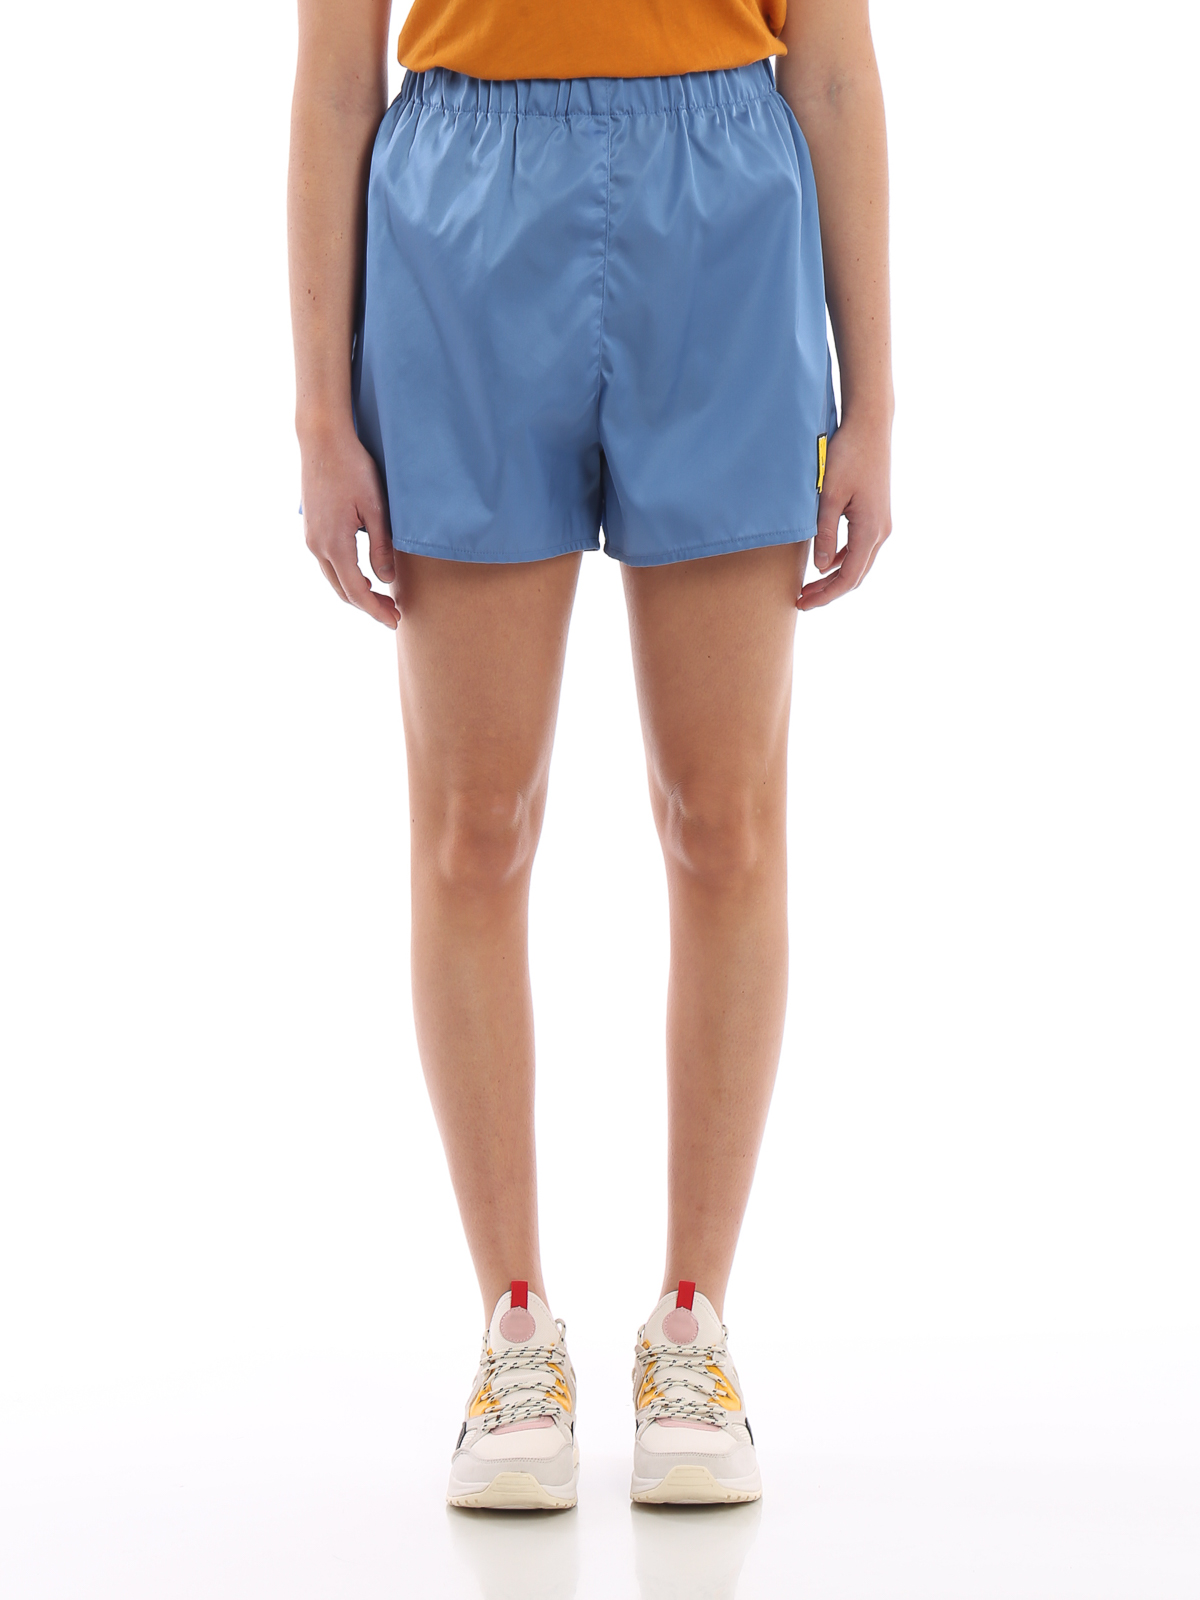 90ed9603b2f77 iKRIX-prada-trousers-shorts-light-nylon-gabardine-short-pants-00000147960f00s013.jpg